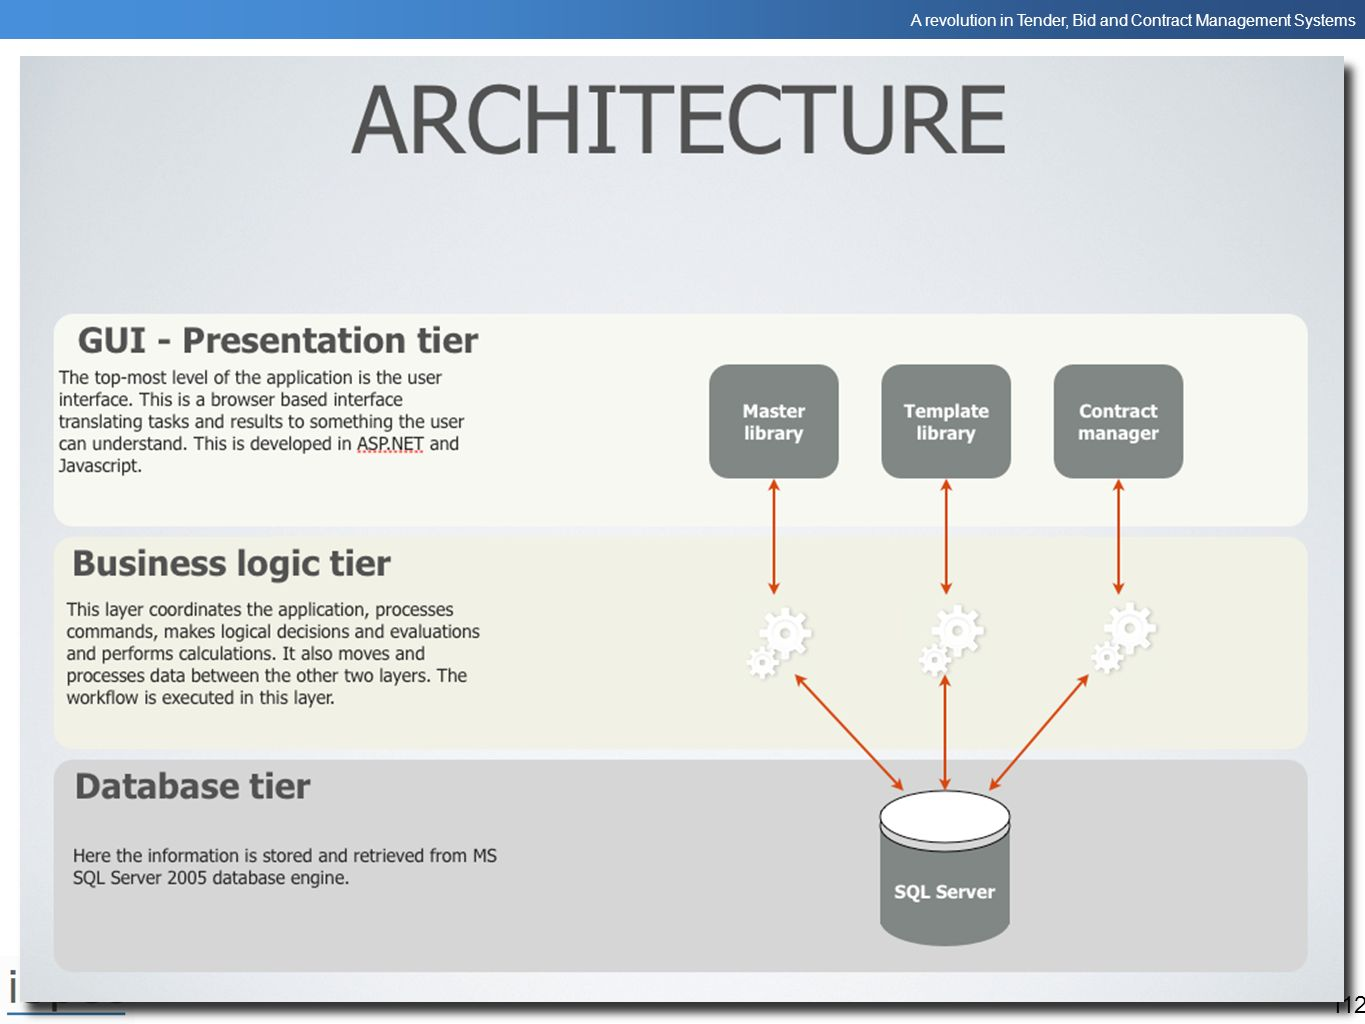 iSpec uses the familiar 3 tier architecture.